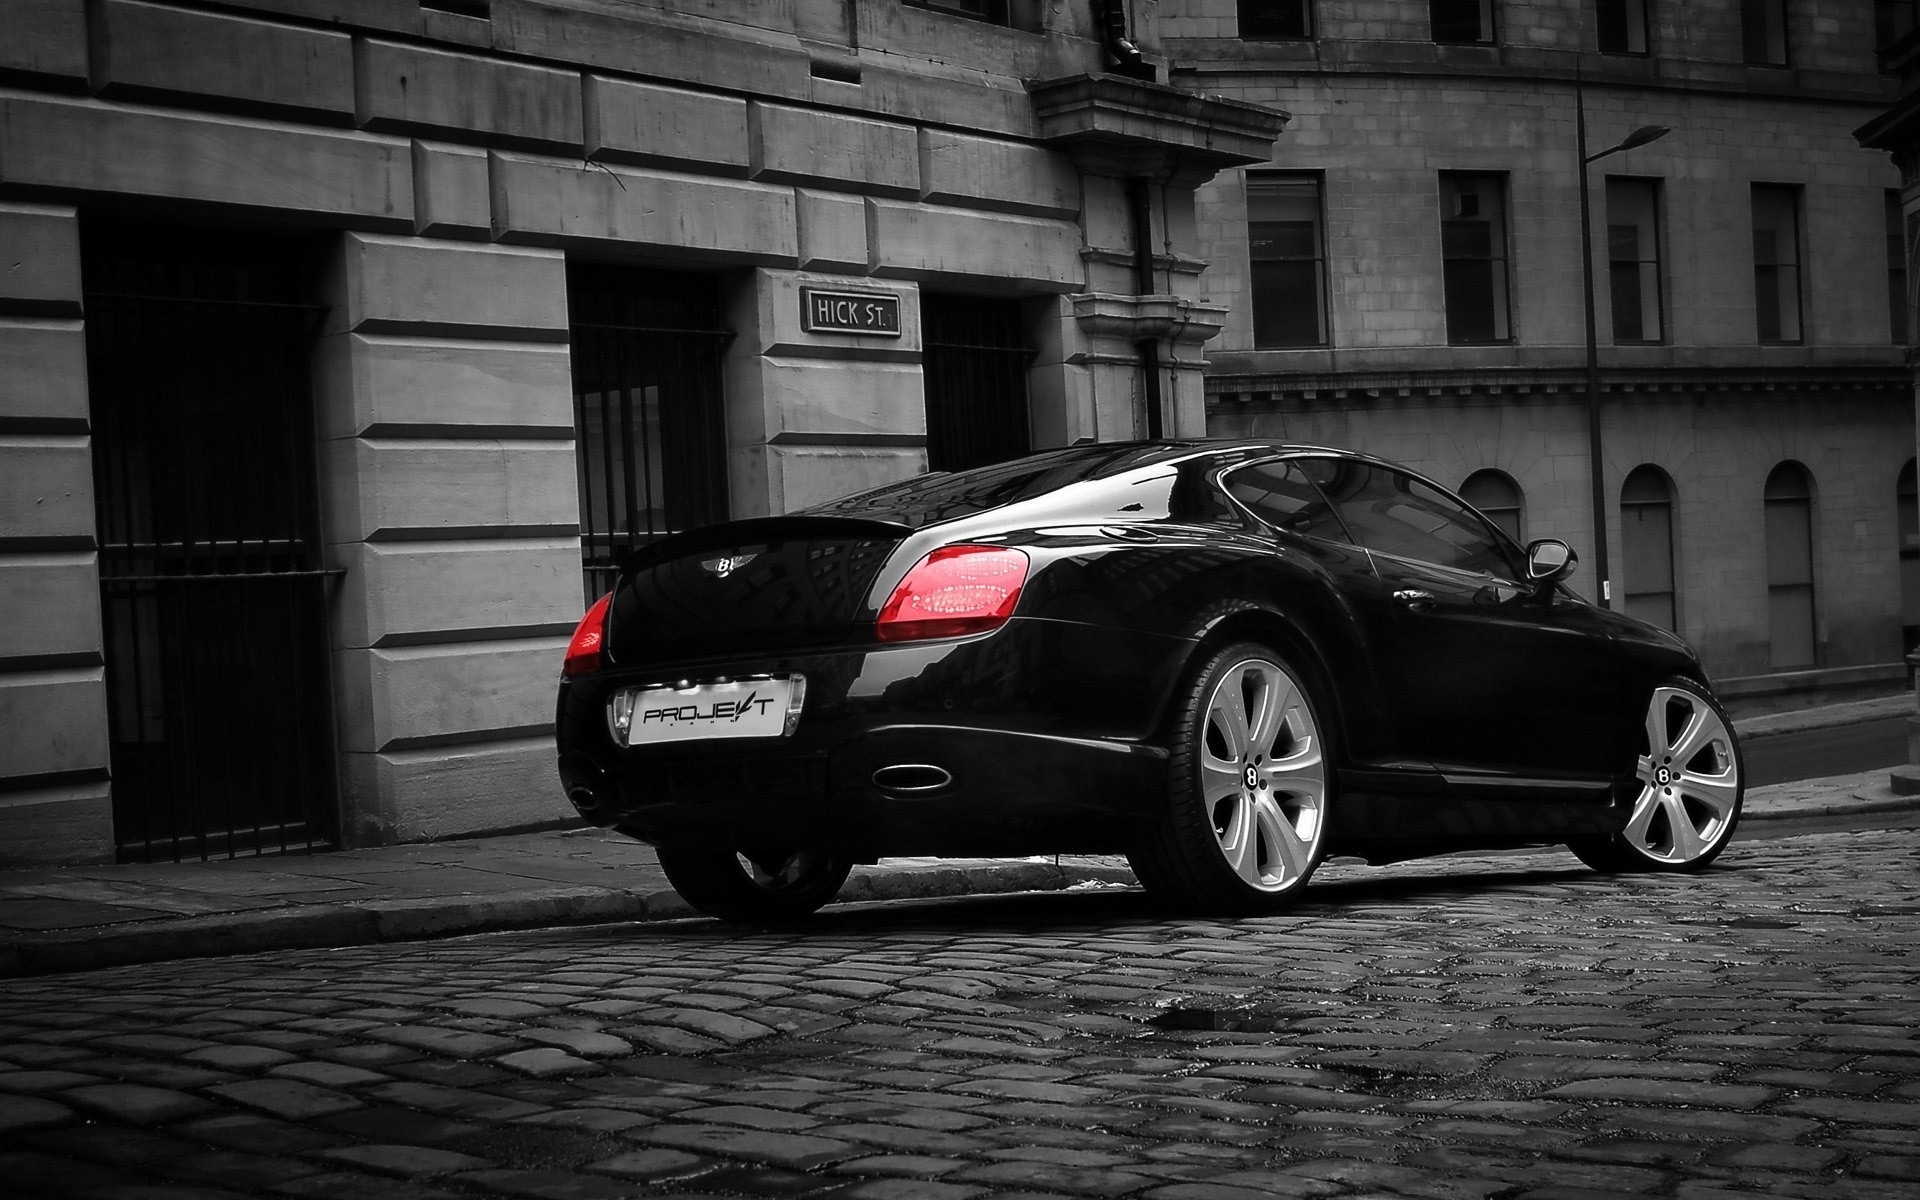 bentley car street vehicle pavement road transportation system city wheel bentley gts